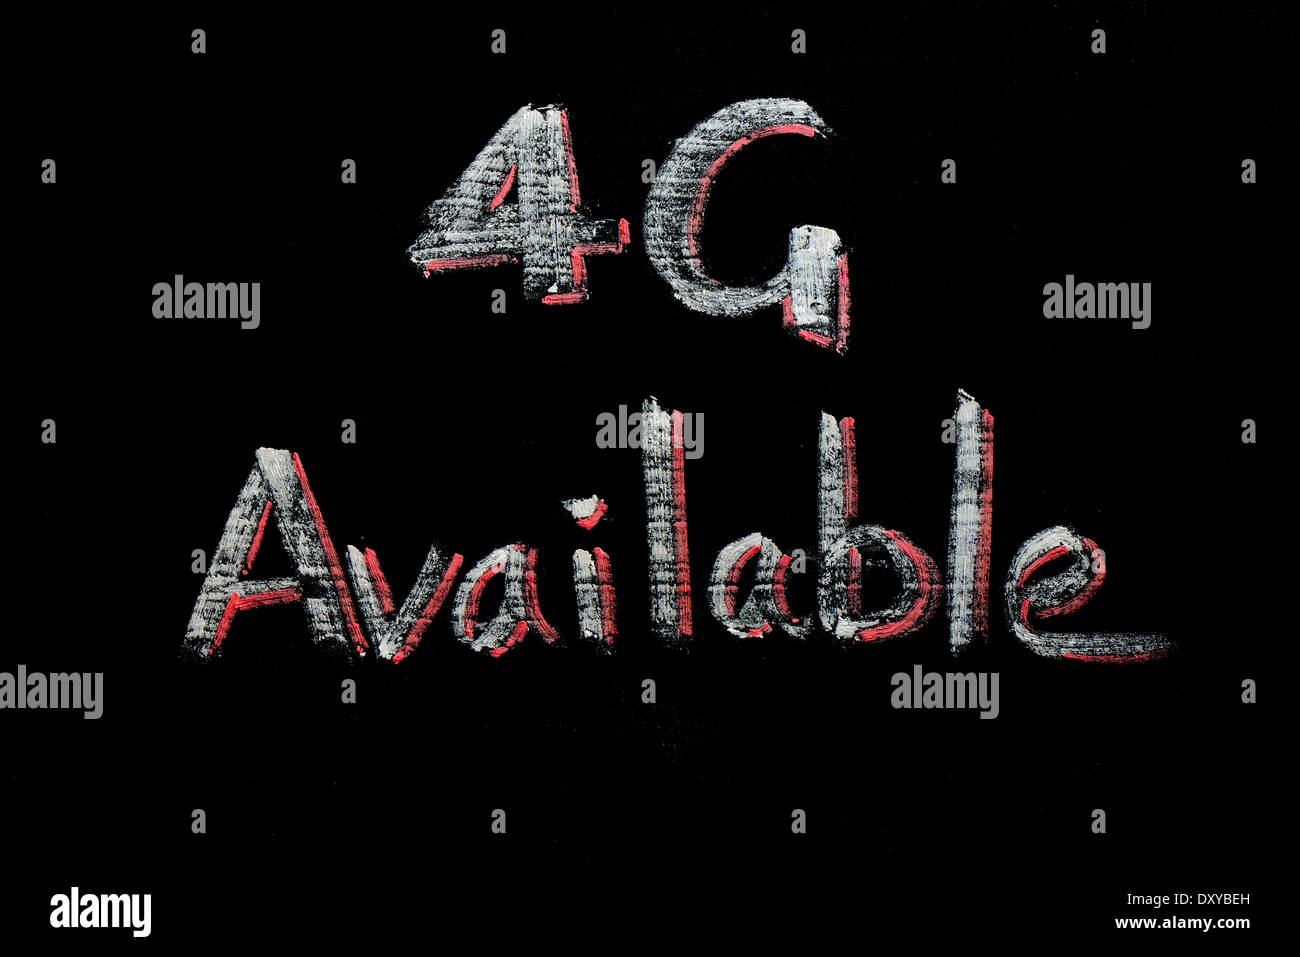 4G Available written on a blackboard - Stock Image